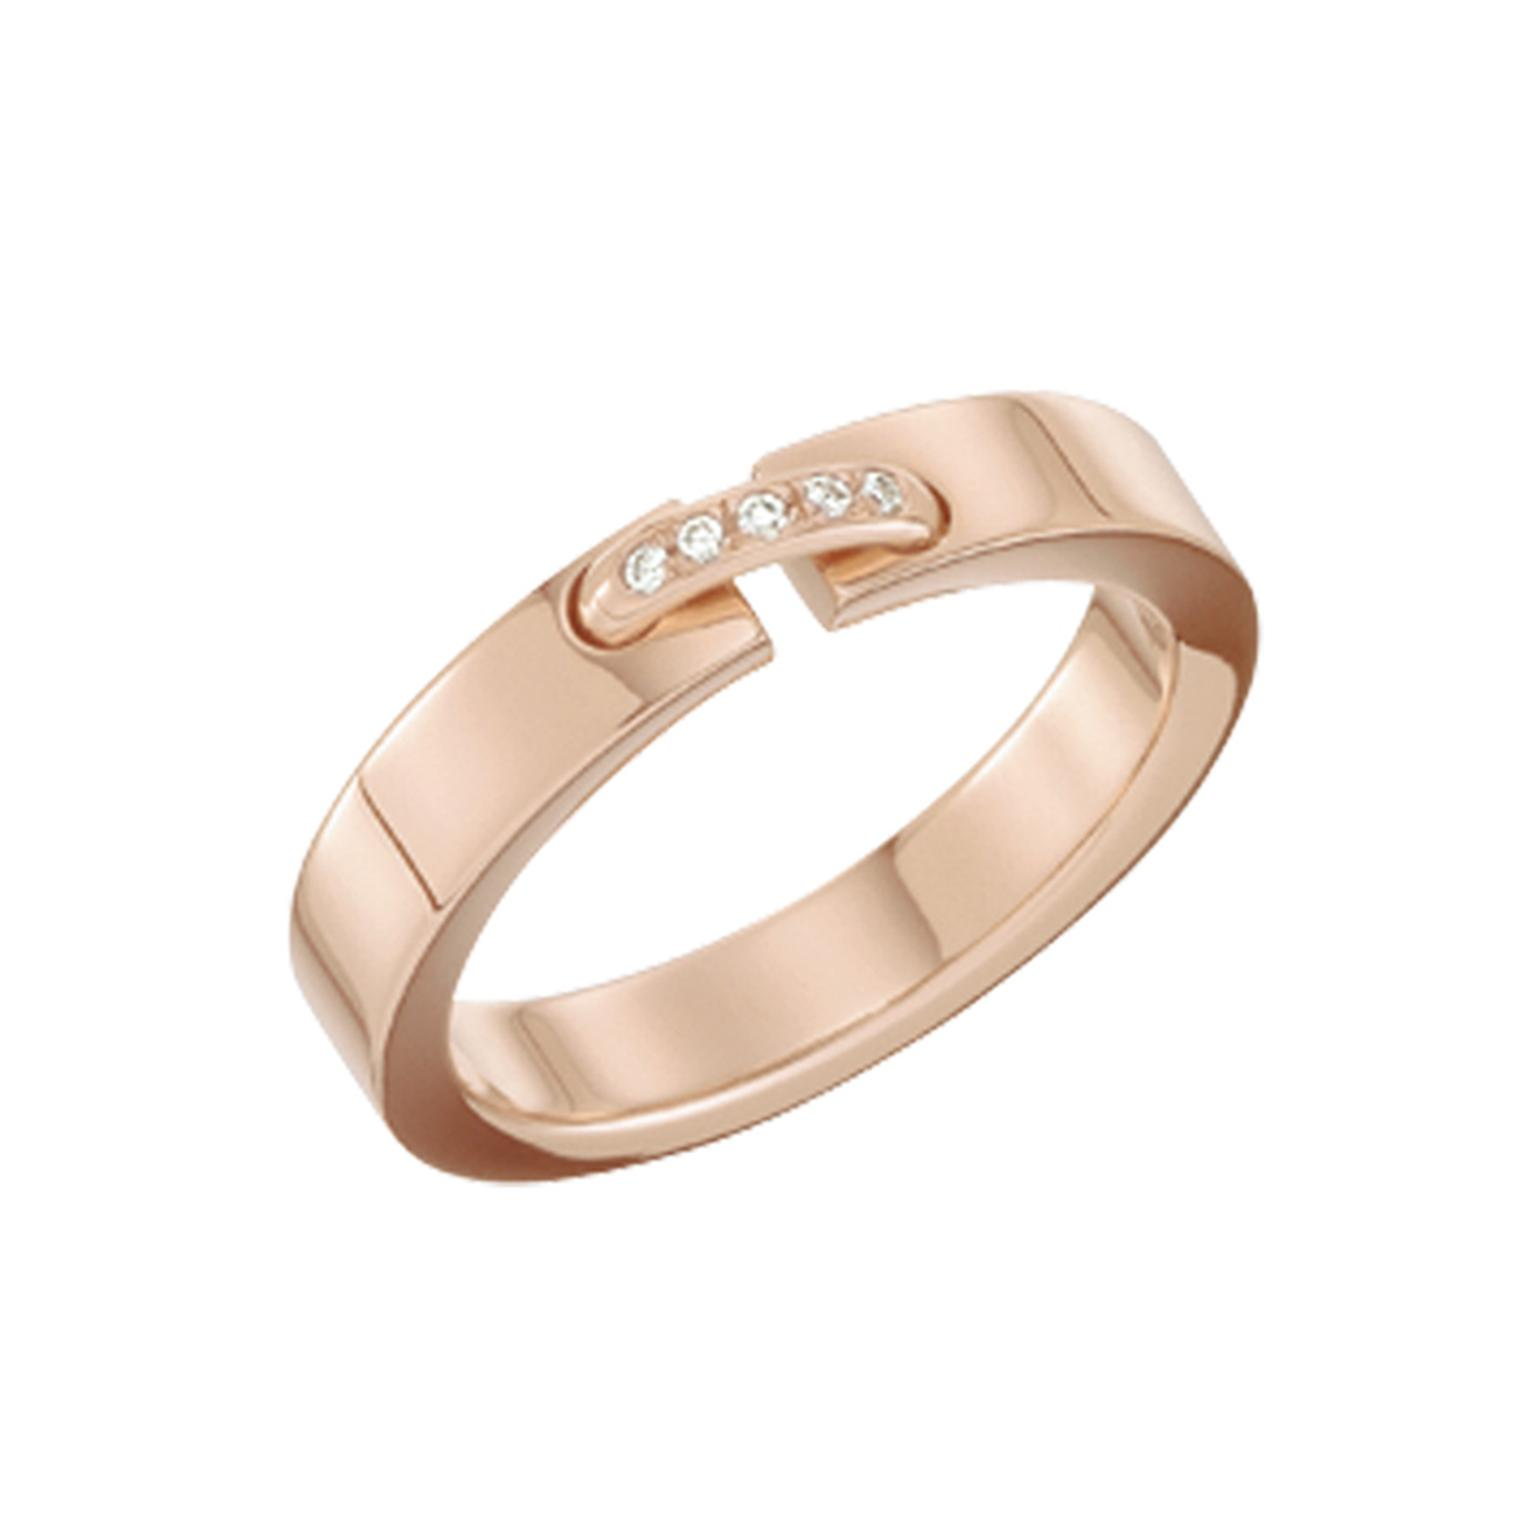 Évidence rose gold ring with diamonds